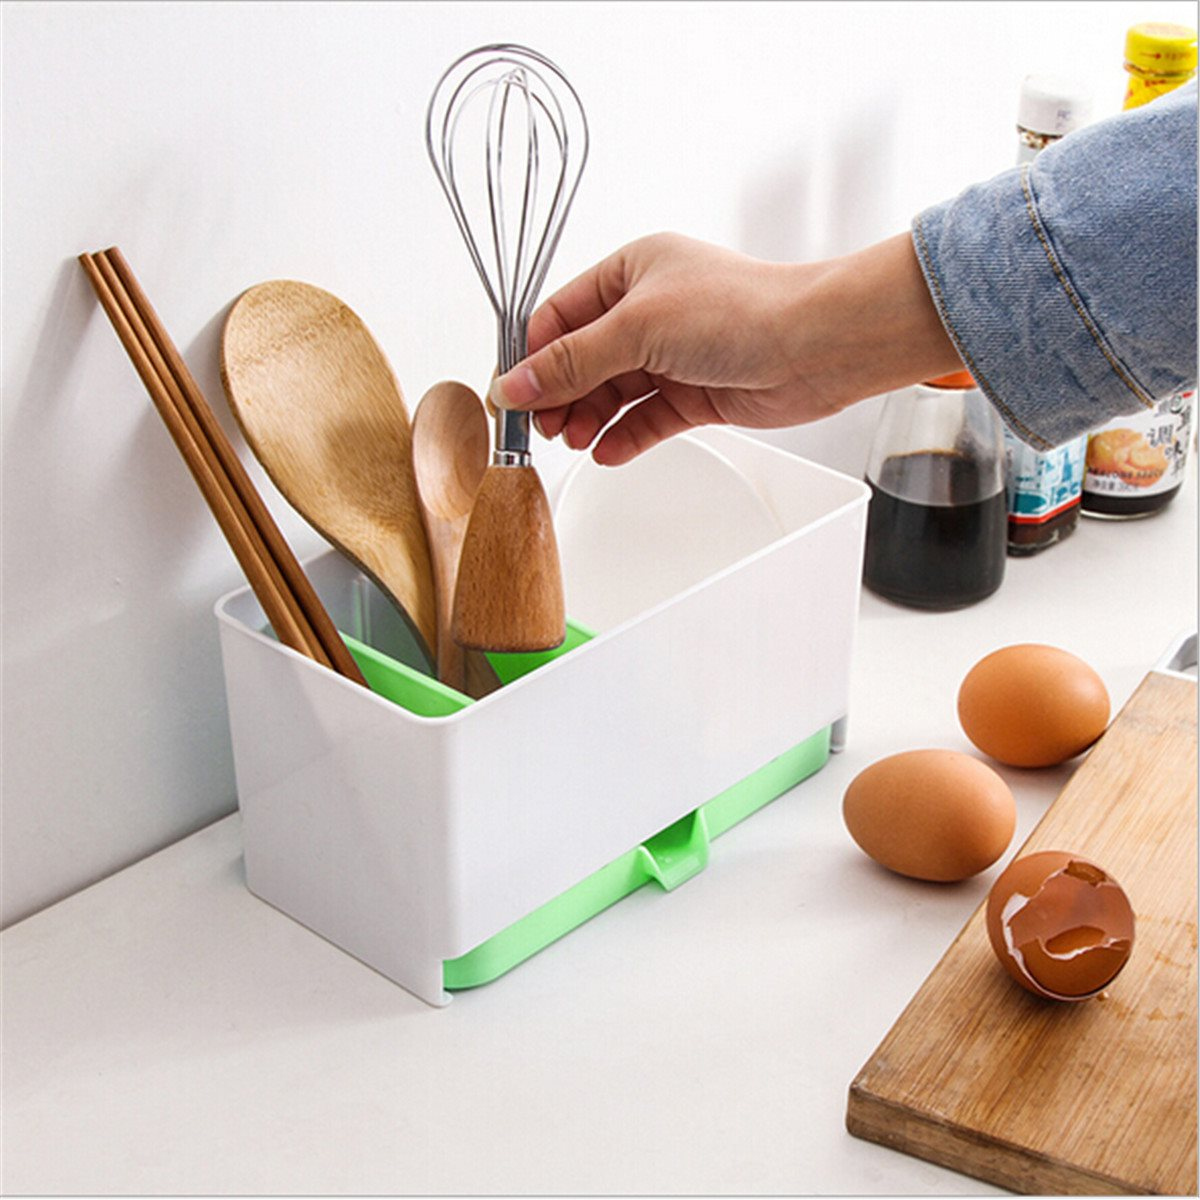 Utensils Holder Rack Caddy Sponge Basket Wash Dry Shelf Cutlery ...